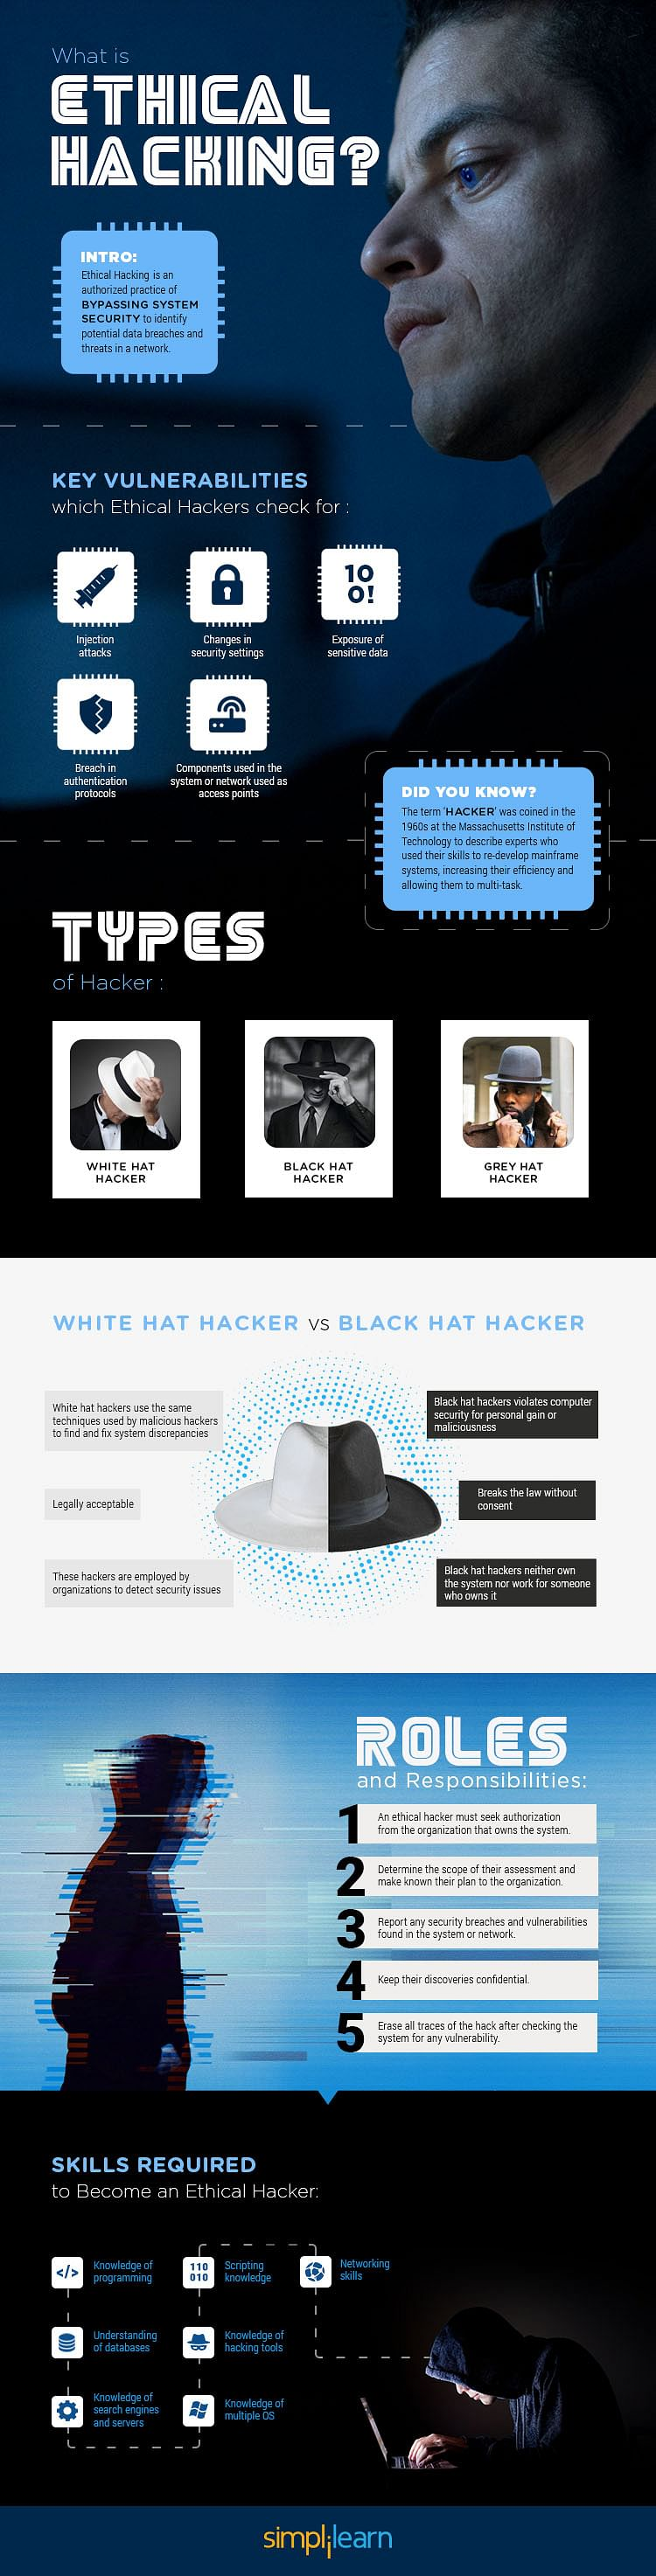 What is Ethical Hacking - Infographic